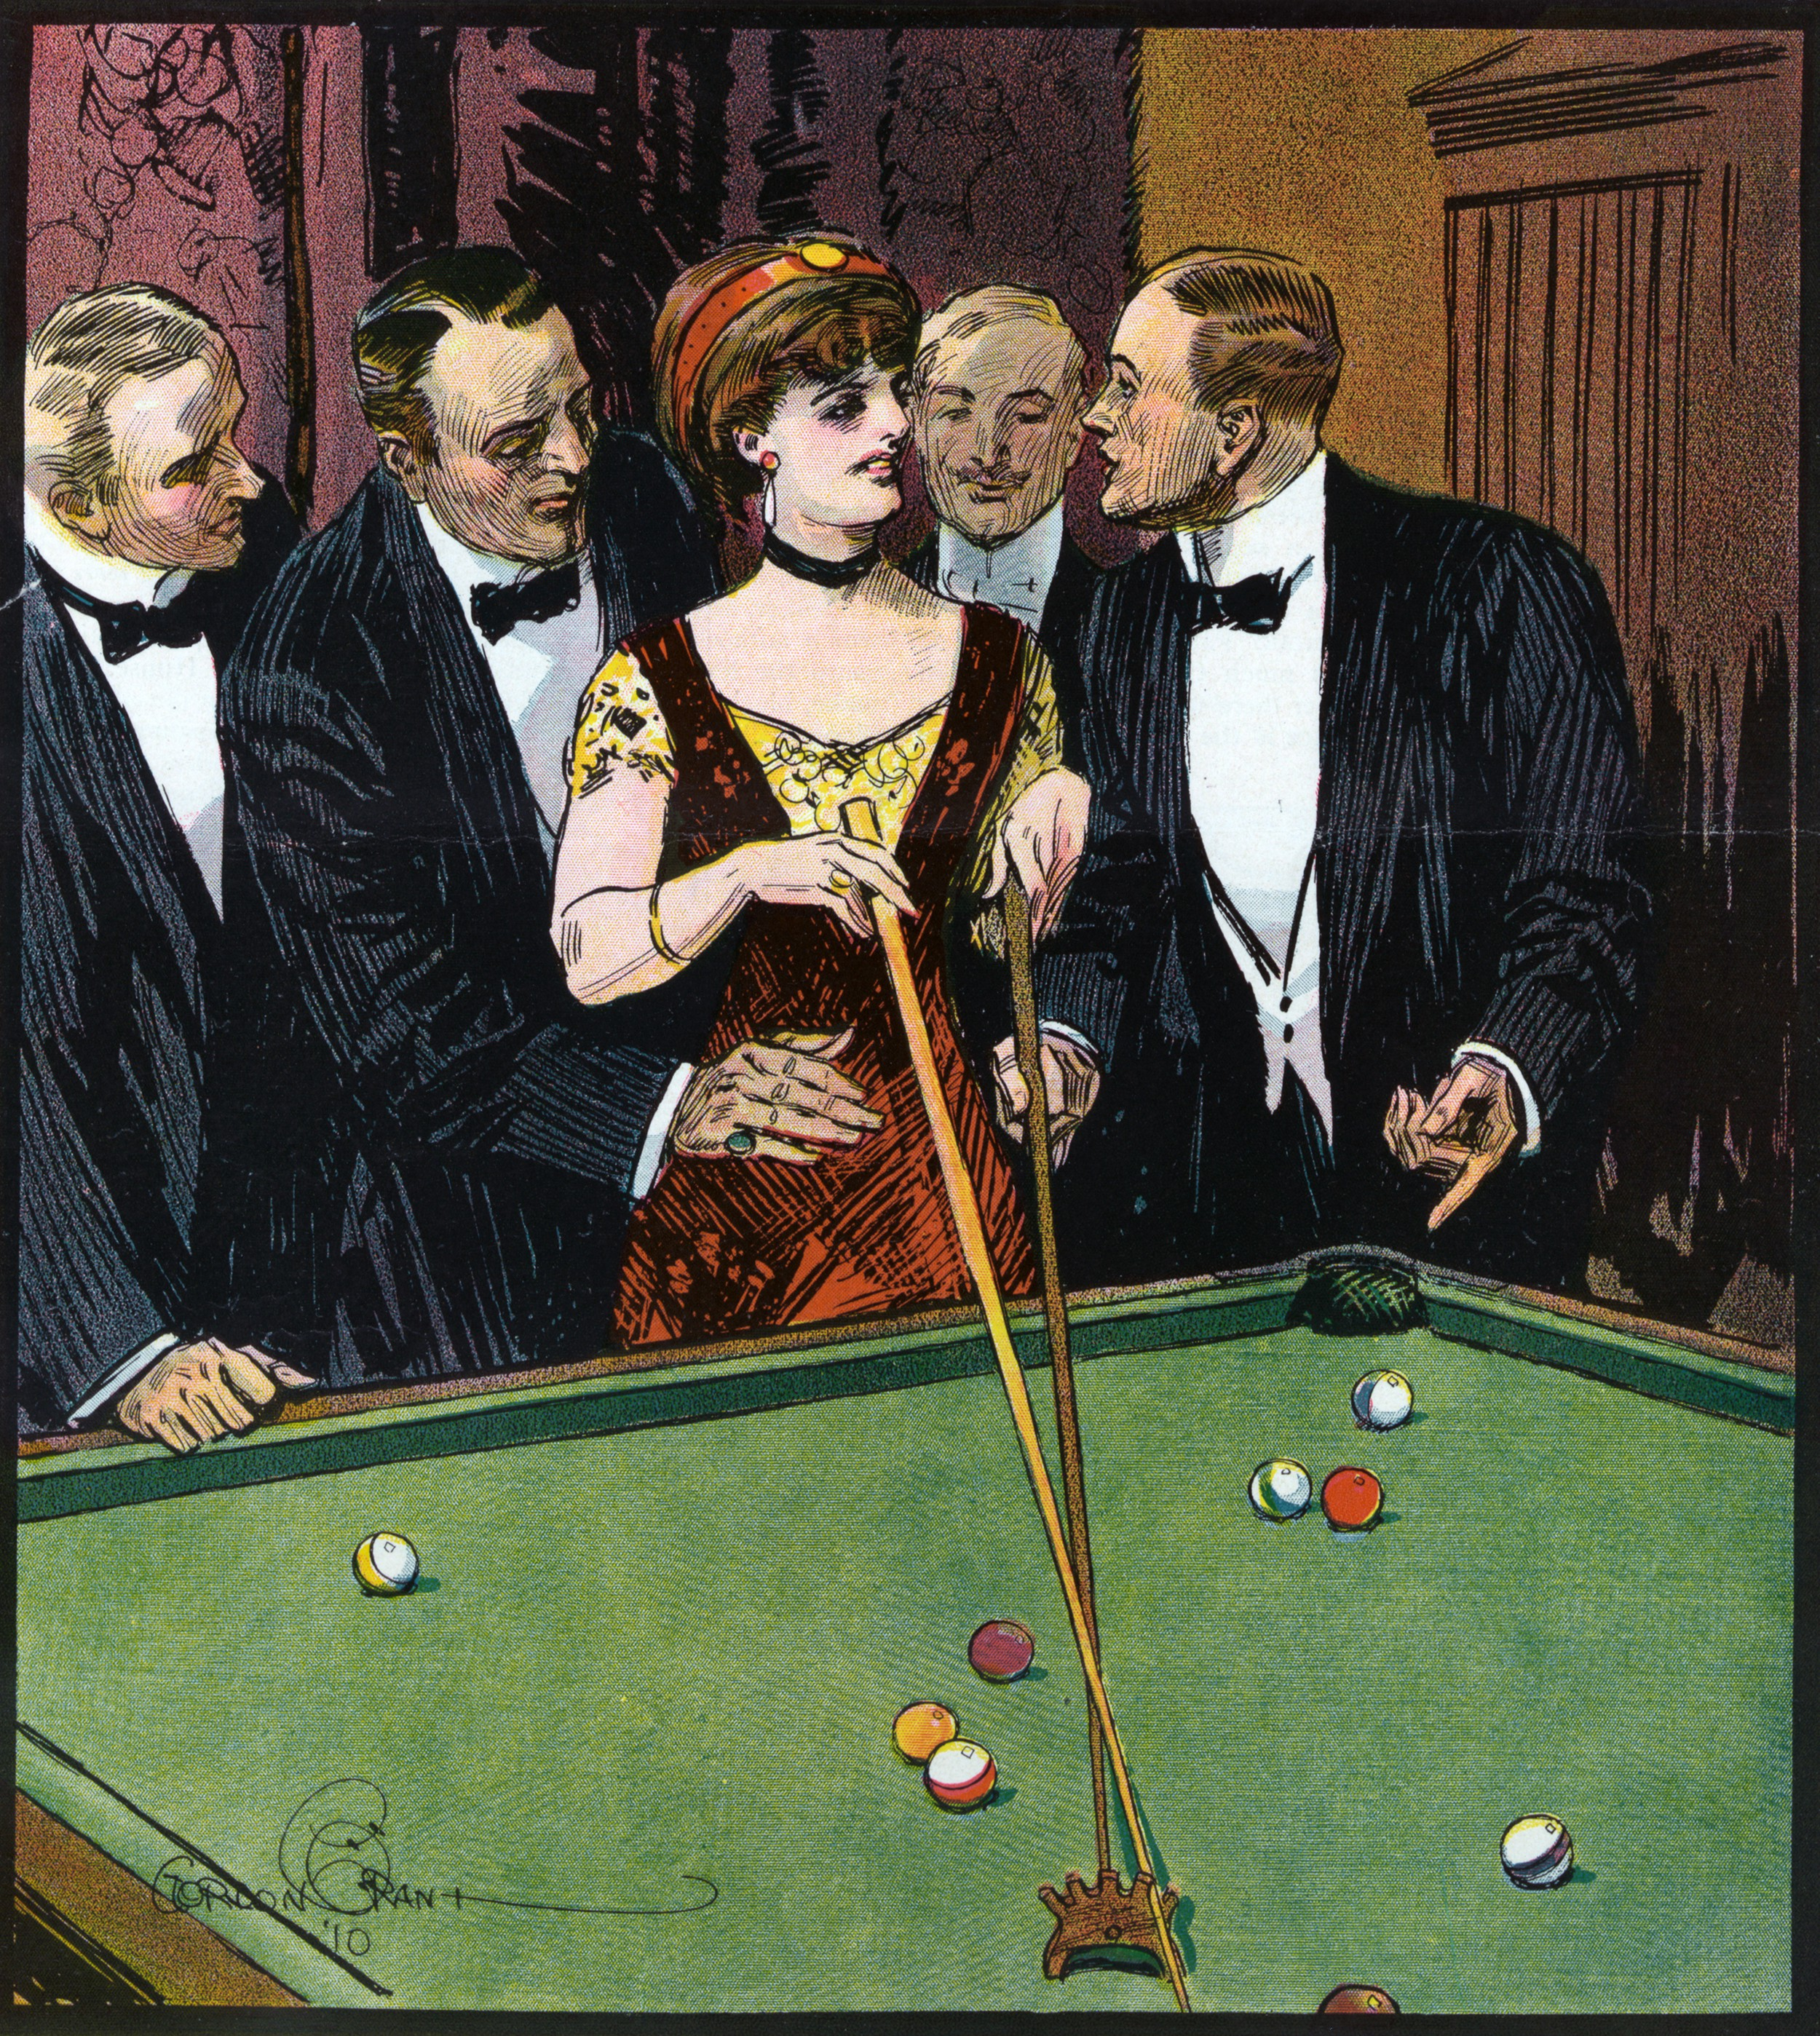 Images of the American pool hall show a man's world of